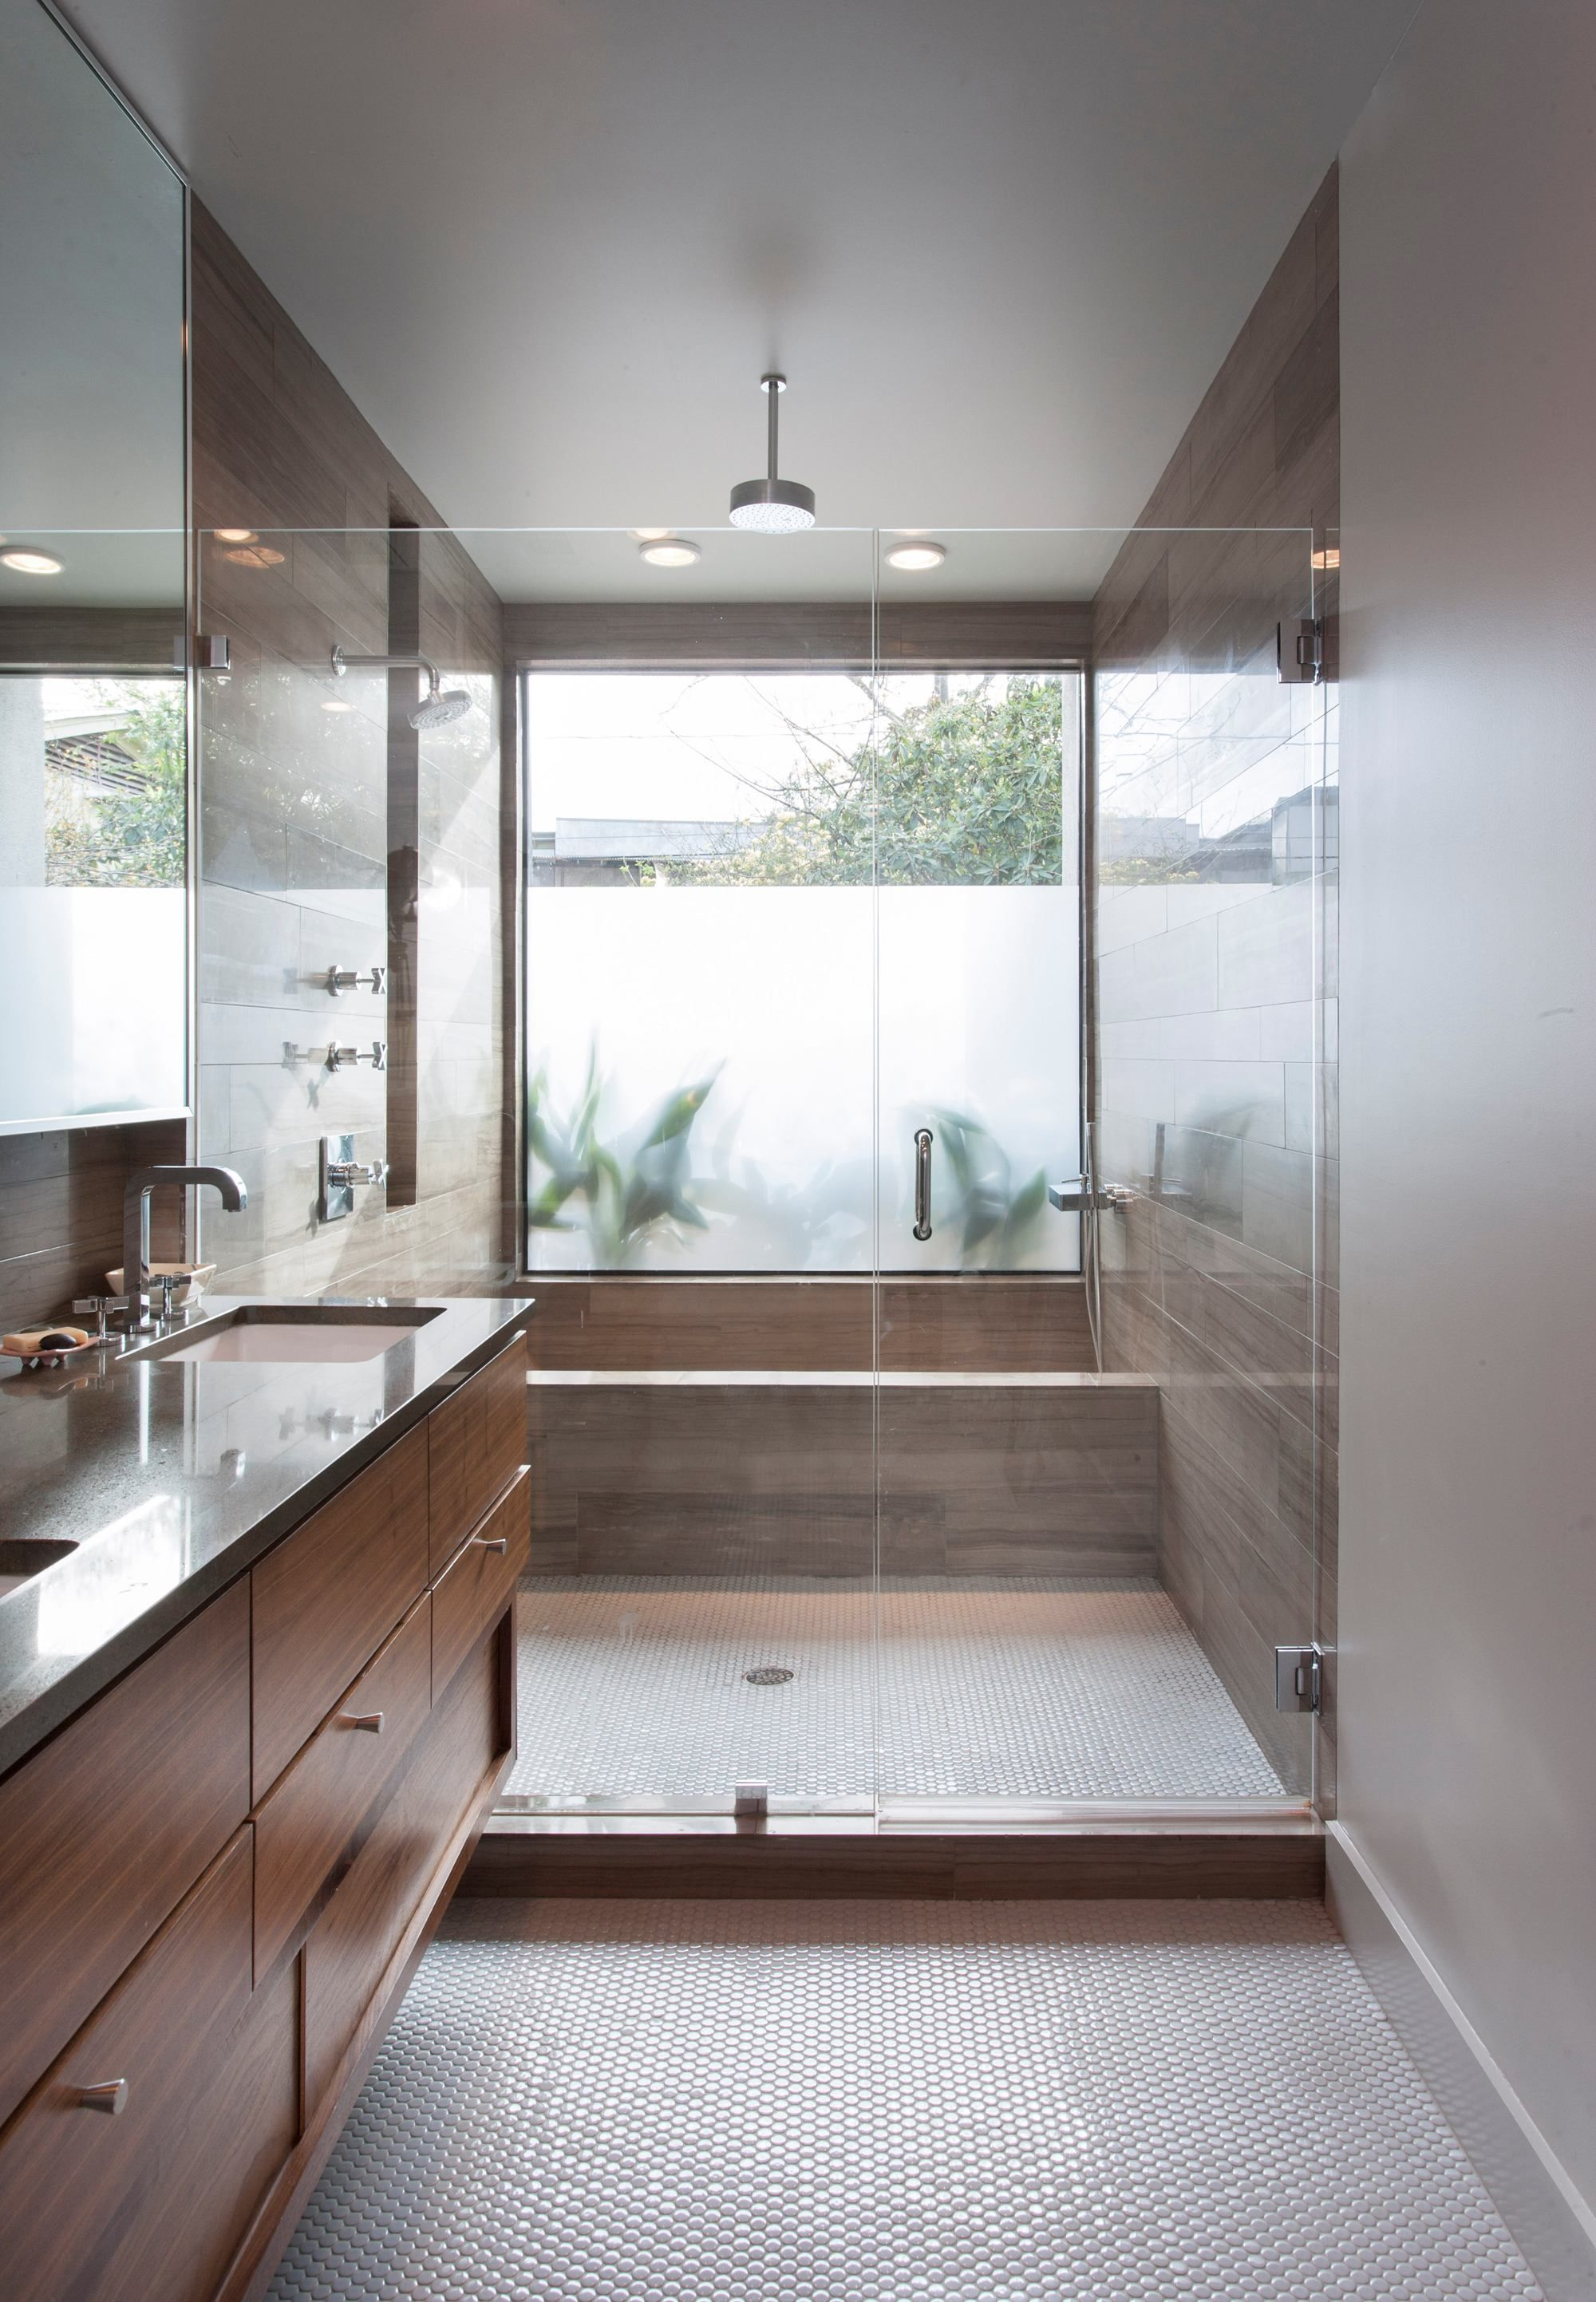 2013 Bath Room Winner Features A Neat Twist On The Oversized Showerwet Room Idea Here The